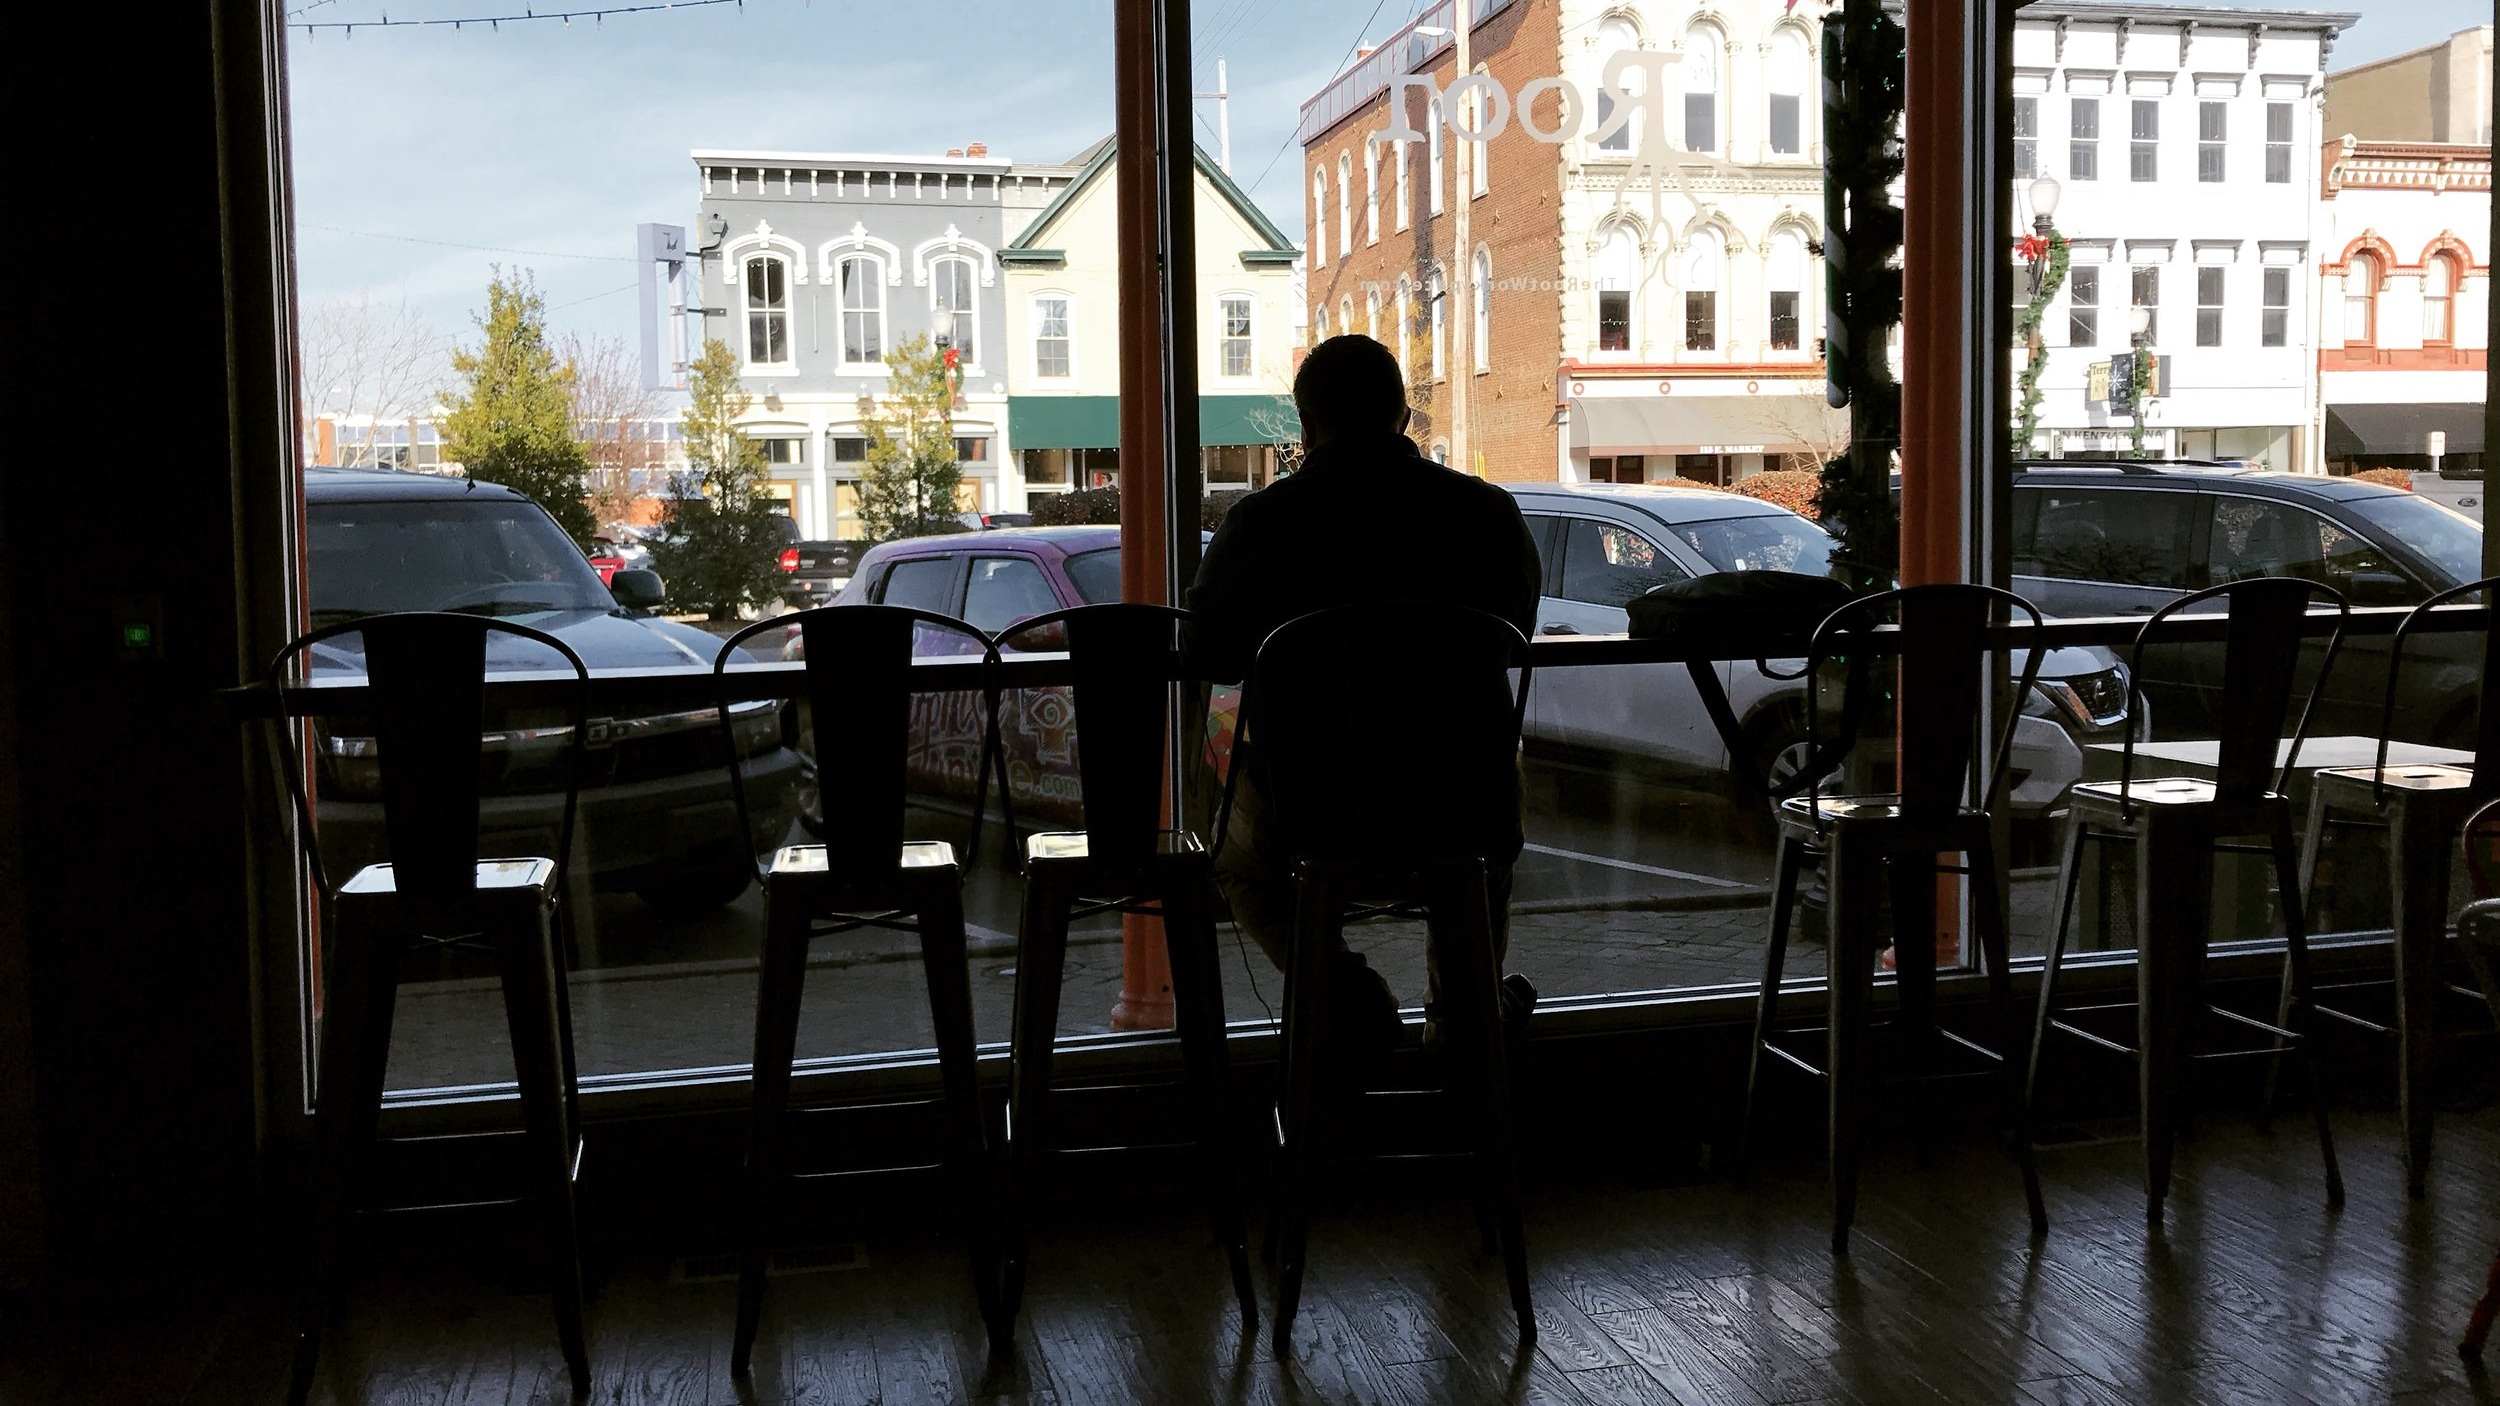 DAY PASS - $15/Day or $70/WeekIf you're just passing through town, or only need a place to set up shop for a day, then this is the option for you. You still get all the comforts of working at The Root.